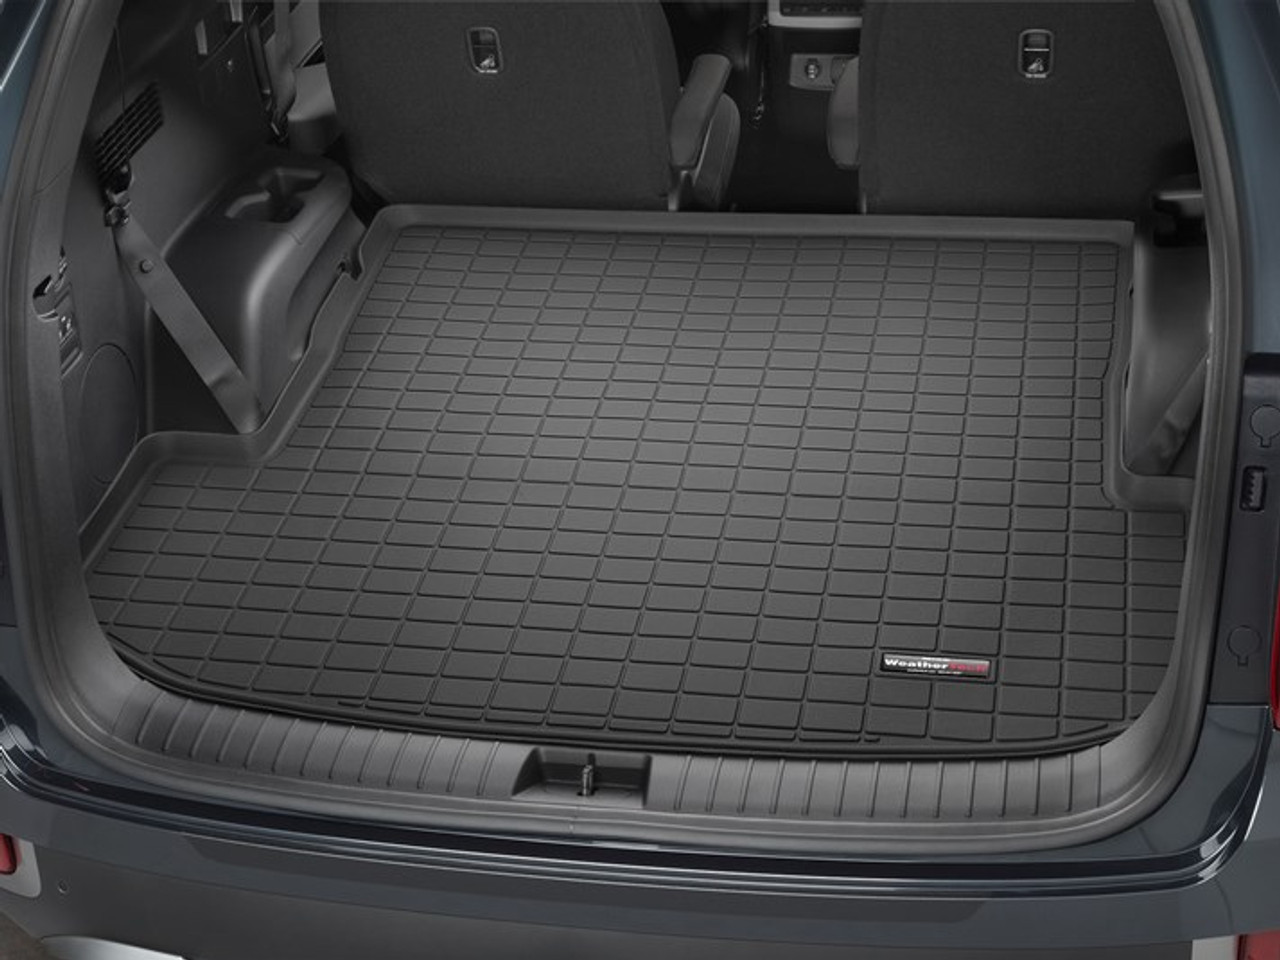 The 2020 hyundai palisade is among the most spacious vehicles in its class, up there with the honda pilot and the chevrolet traverse. 2020 2022 Hyundai Palisade Weathertech Cargo Liner Free Shipping Hyundai Shop